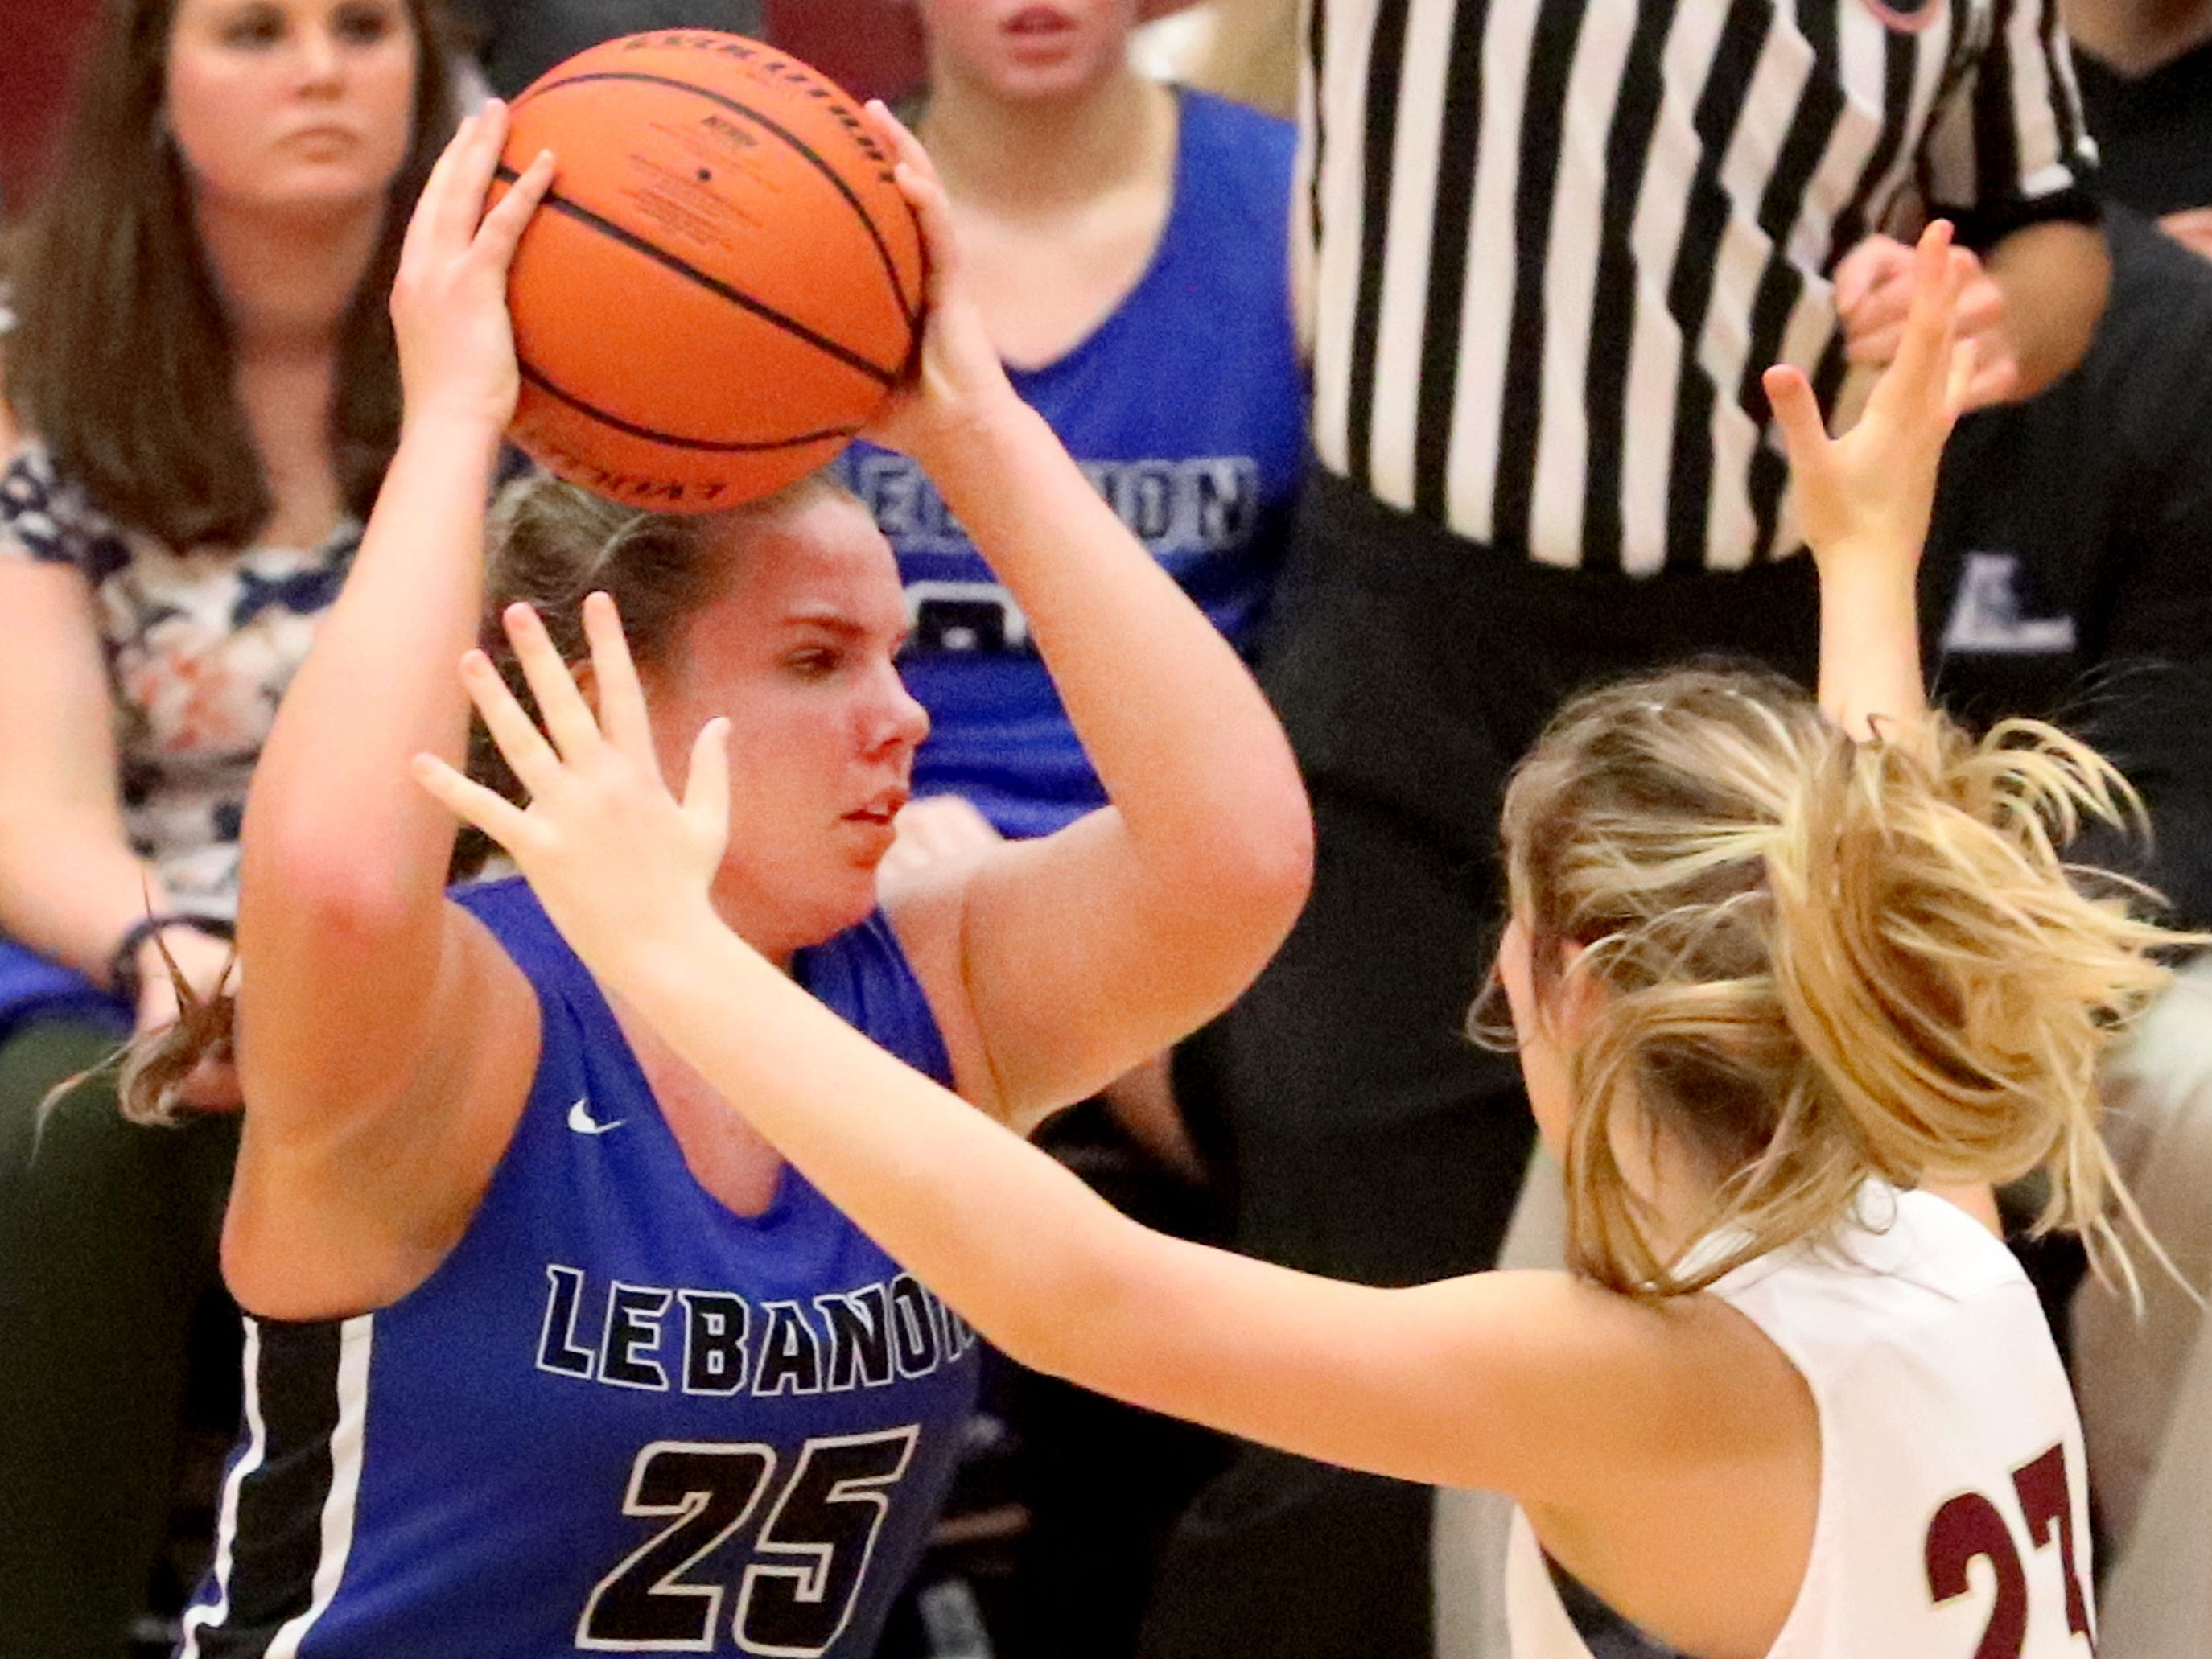 Lebanon's  Allissa Mulaski (25) looks to pass the ball as RiverdaleÕs Jalyn Hollcomb (23) guards her on Friday, Nov. 30, 2018.